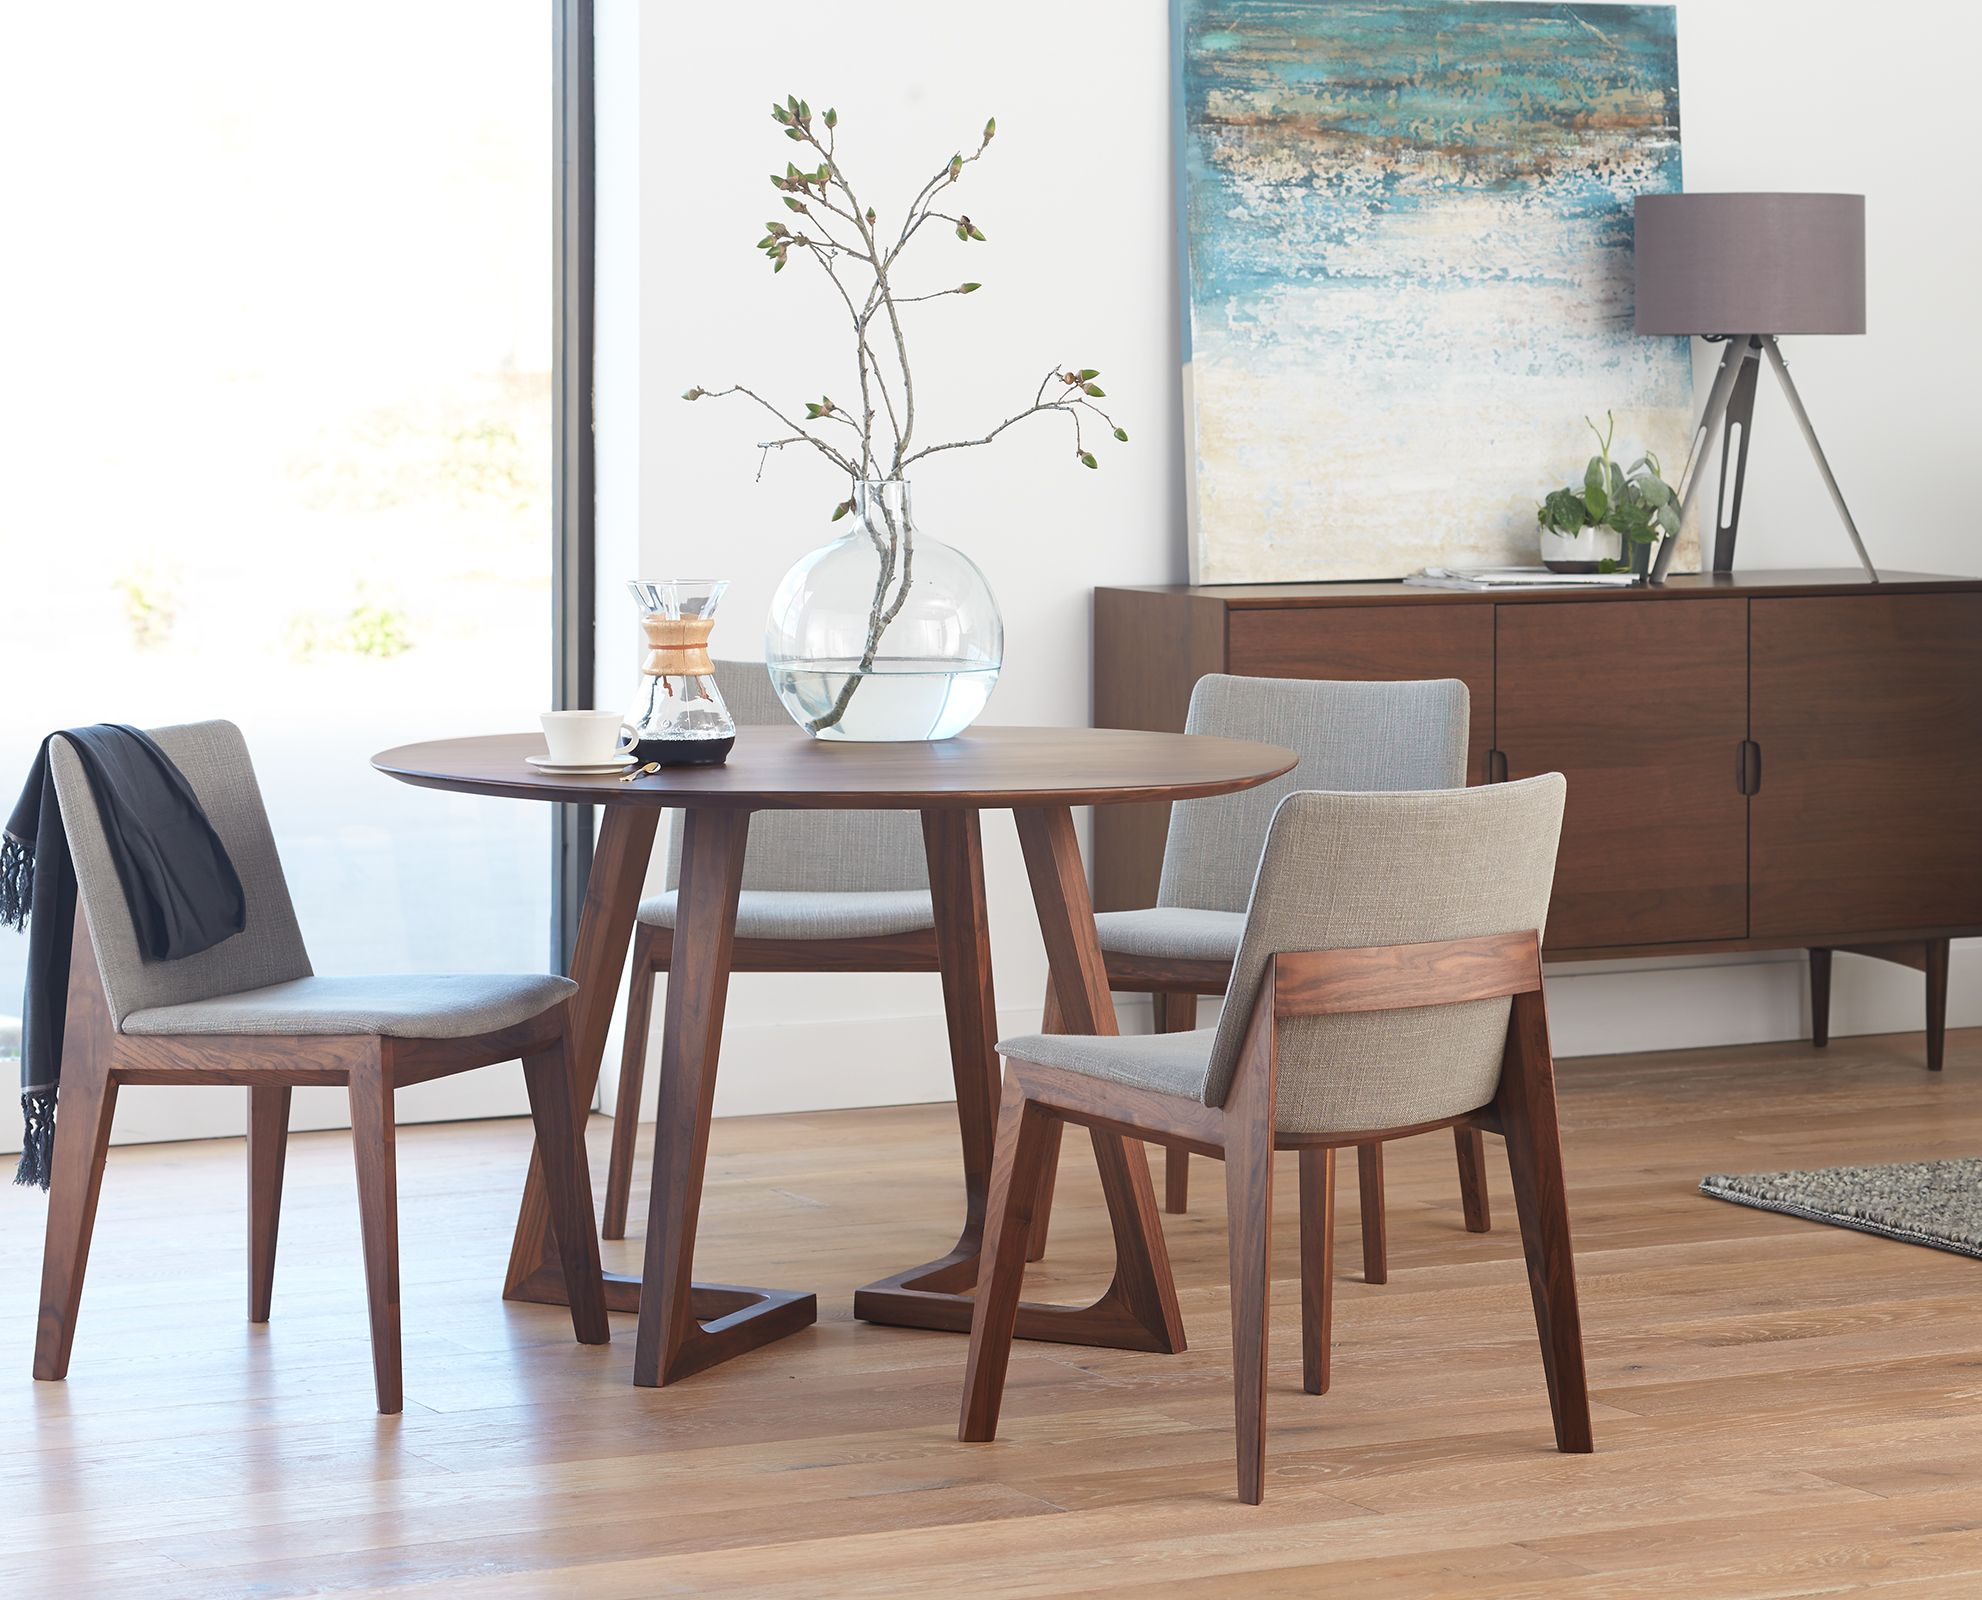 Round table and chairs from dania condo pinterest for Modern round dining room tables